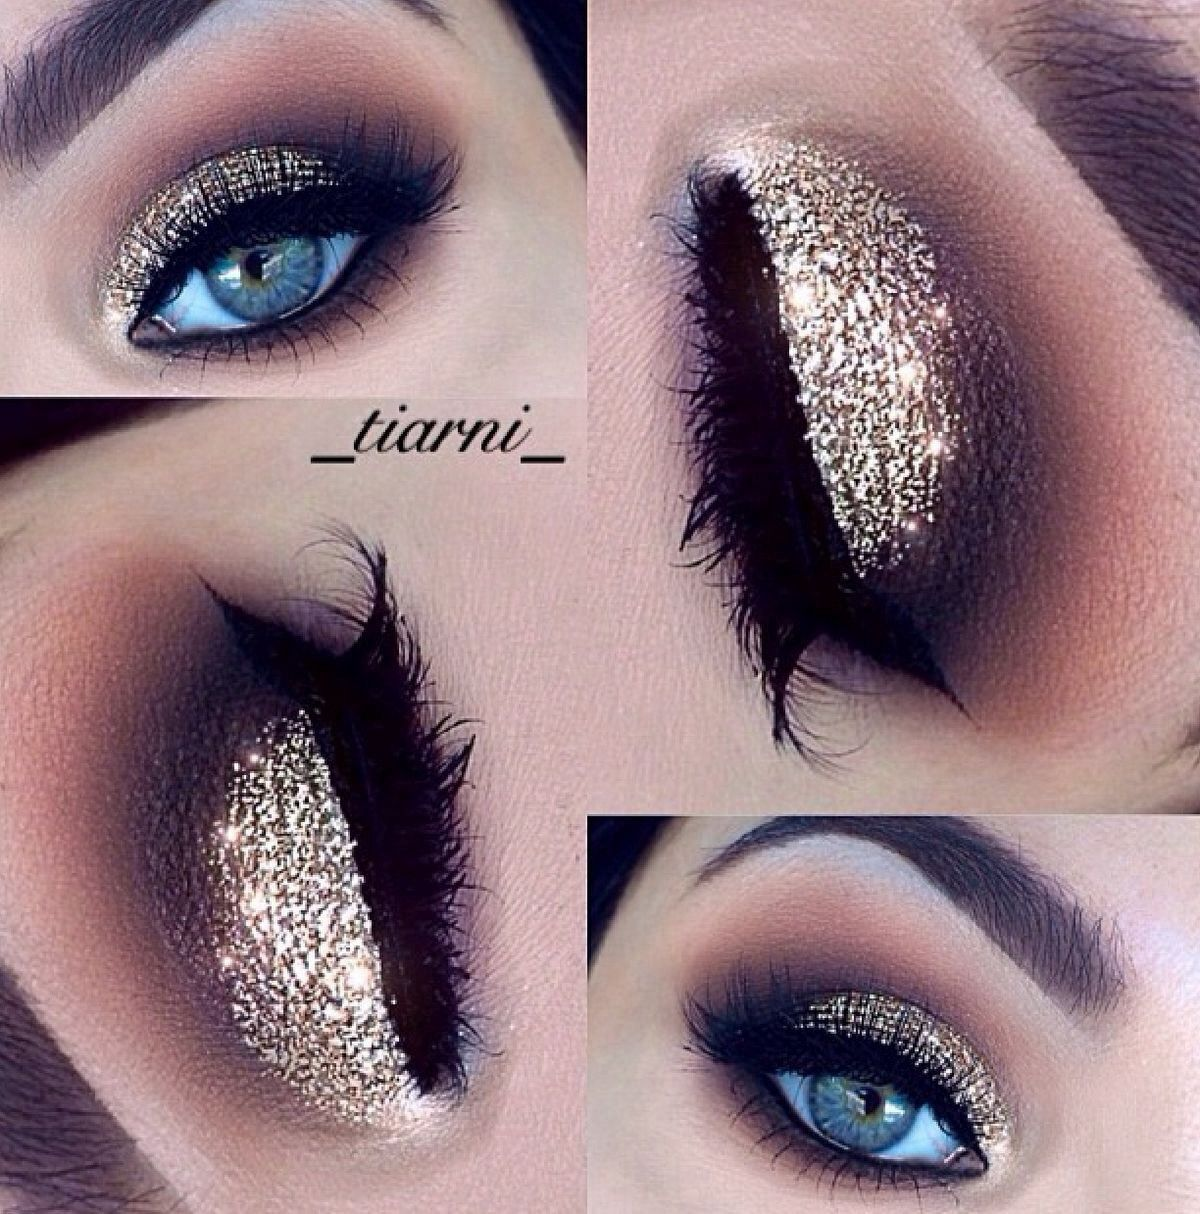 Gold Glittery Eye Makeup For The Step Mother To Match Her Gold